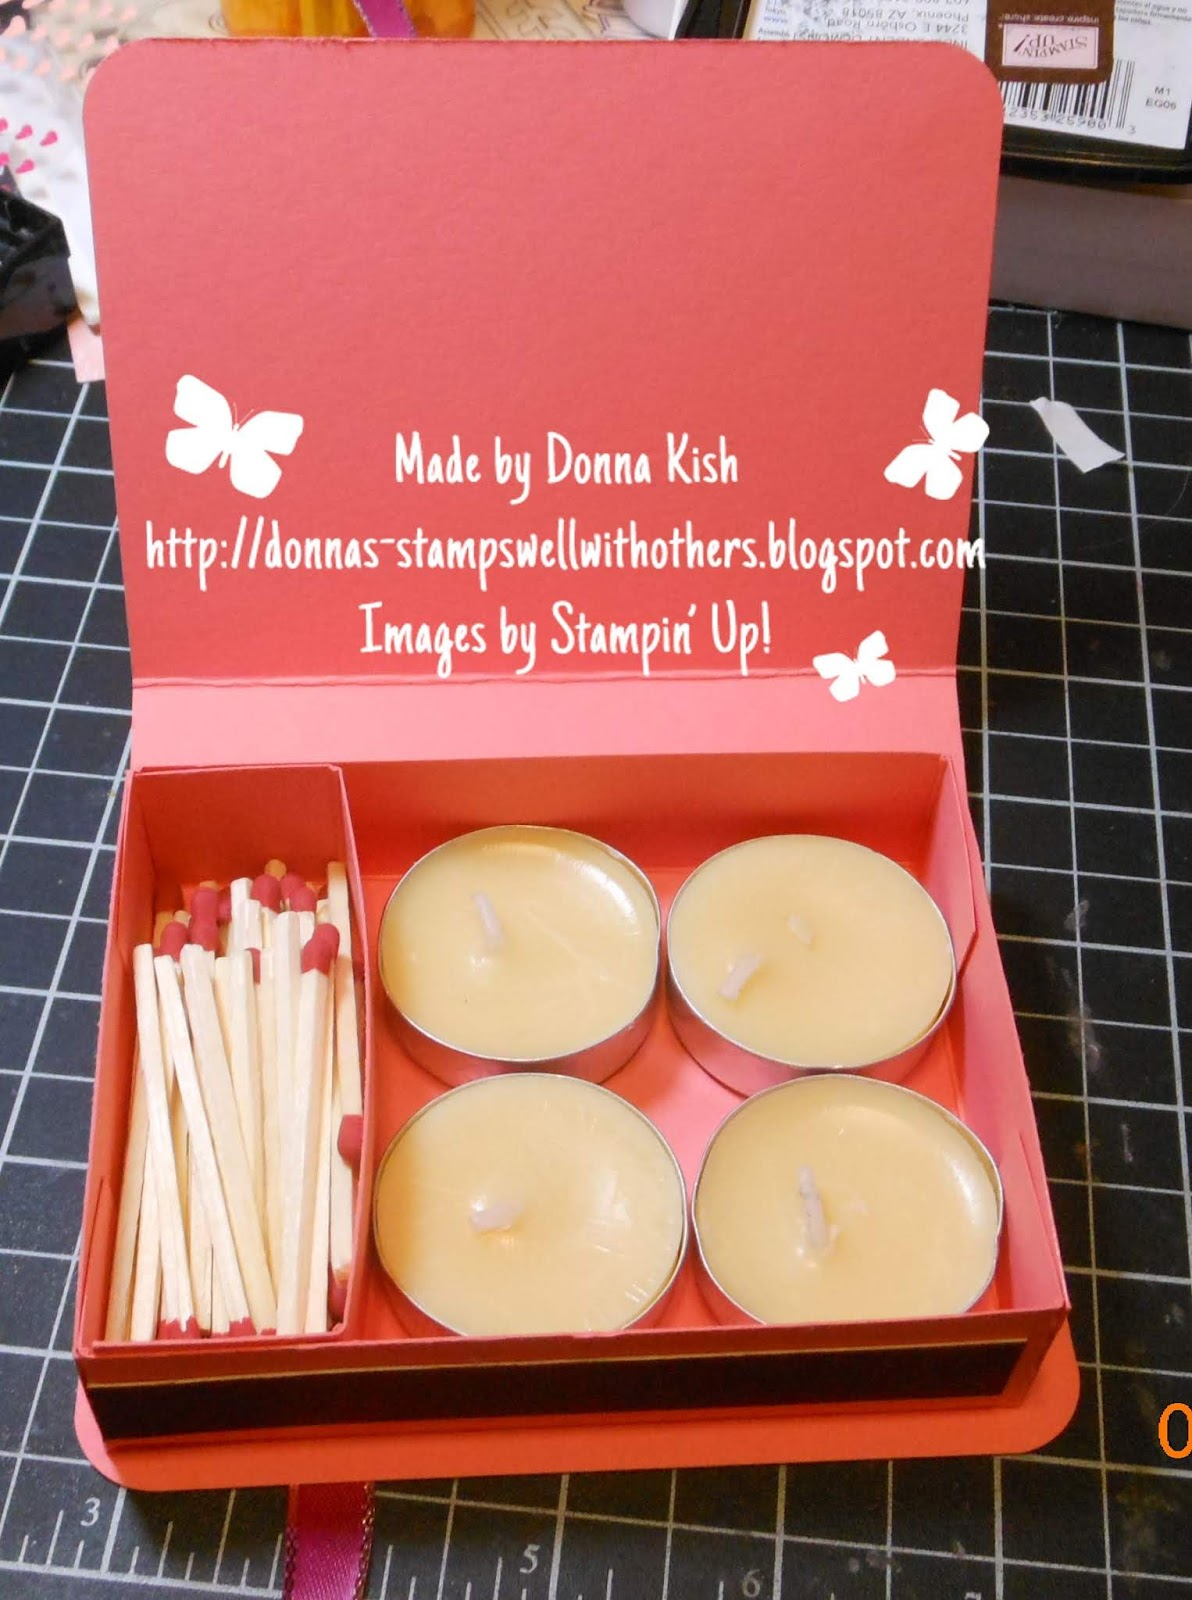 Stamps Well With Others: Candles and Match Holder